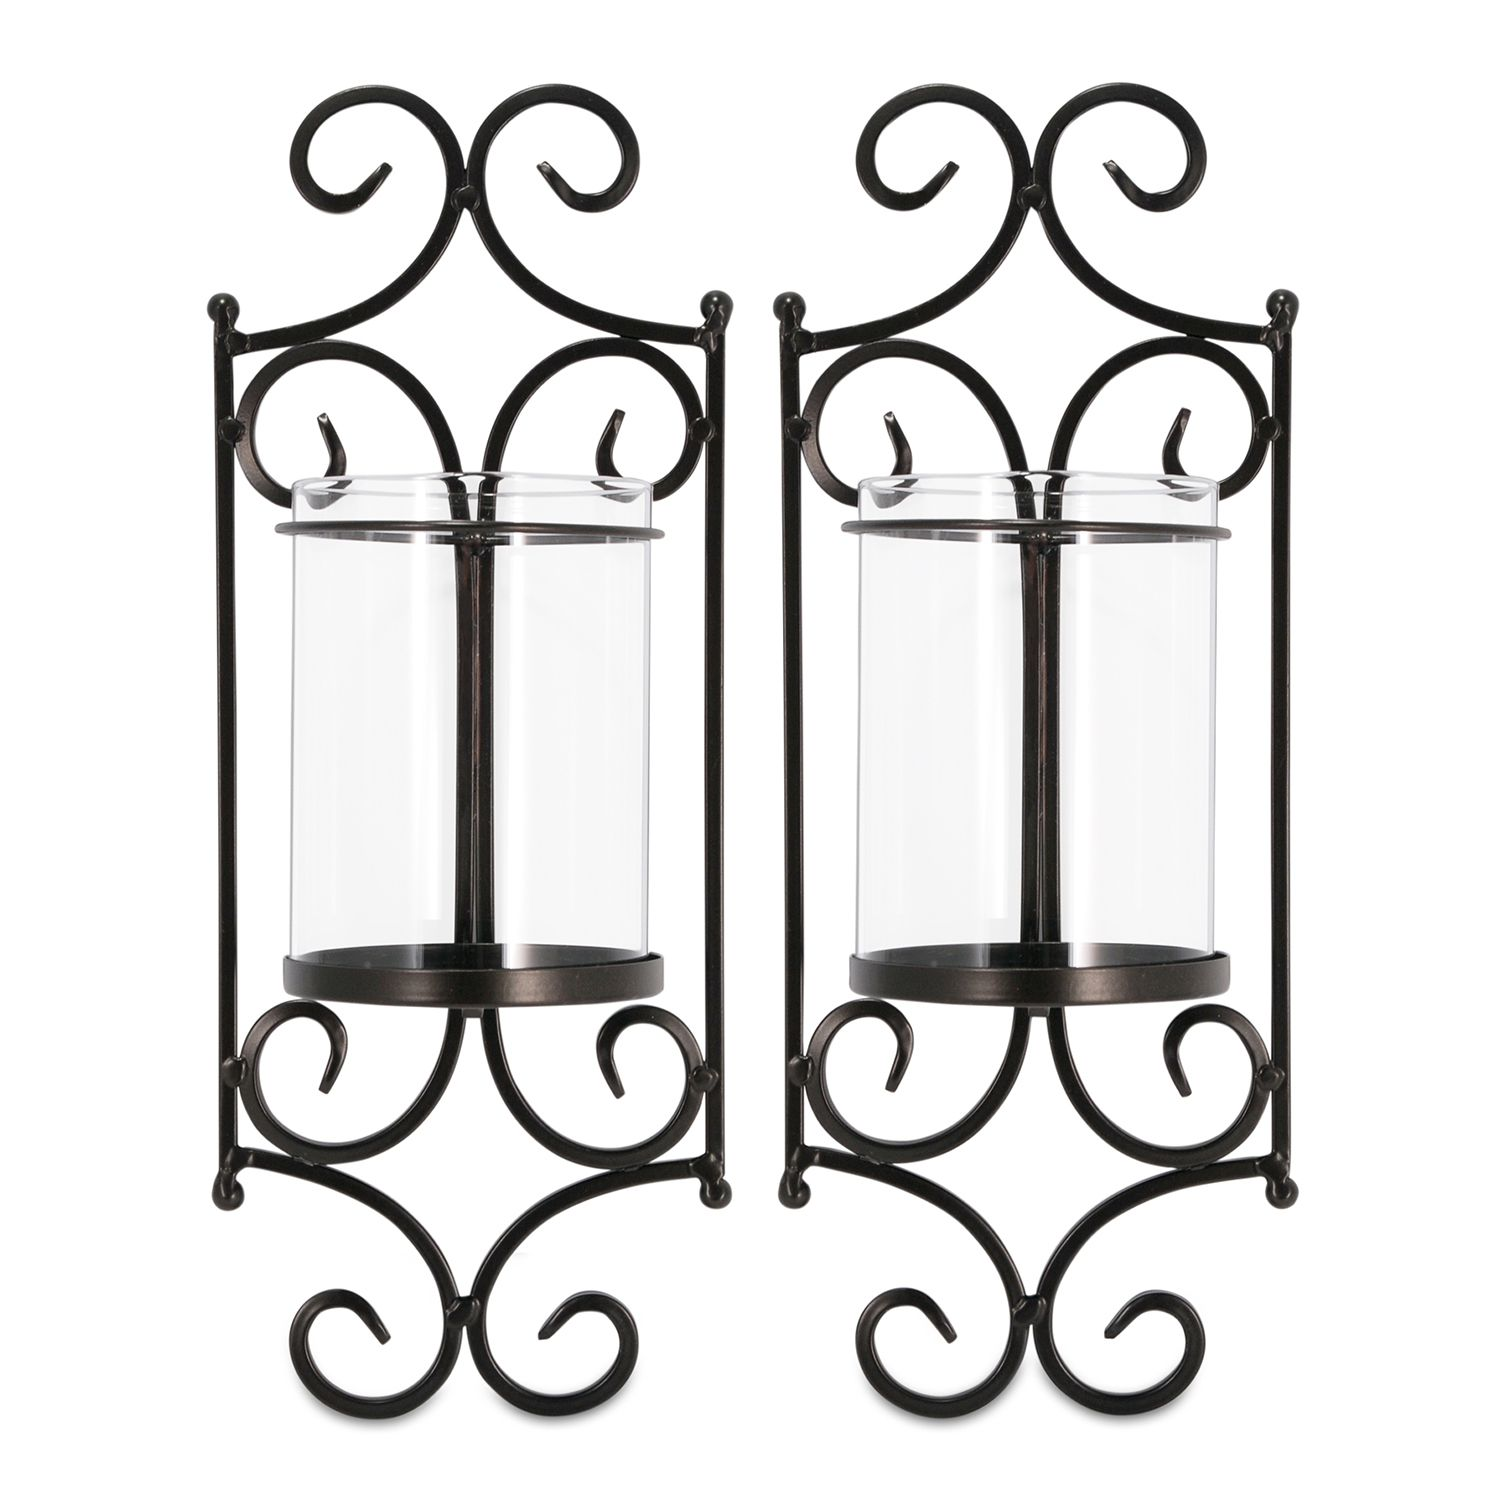 San Miguel 2-piece Windsor Candle Wall Sconce Set  sc 1 st  Kohlu0027s & San Miguel 2-piece Windsor Candle Wall Sconce Set | null